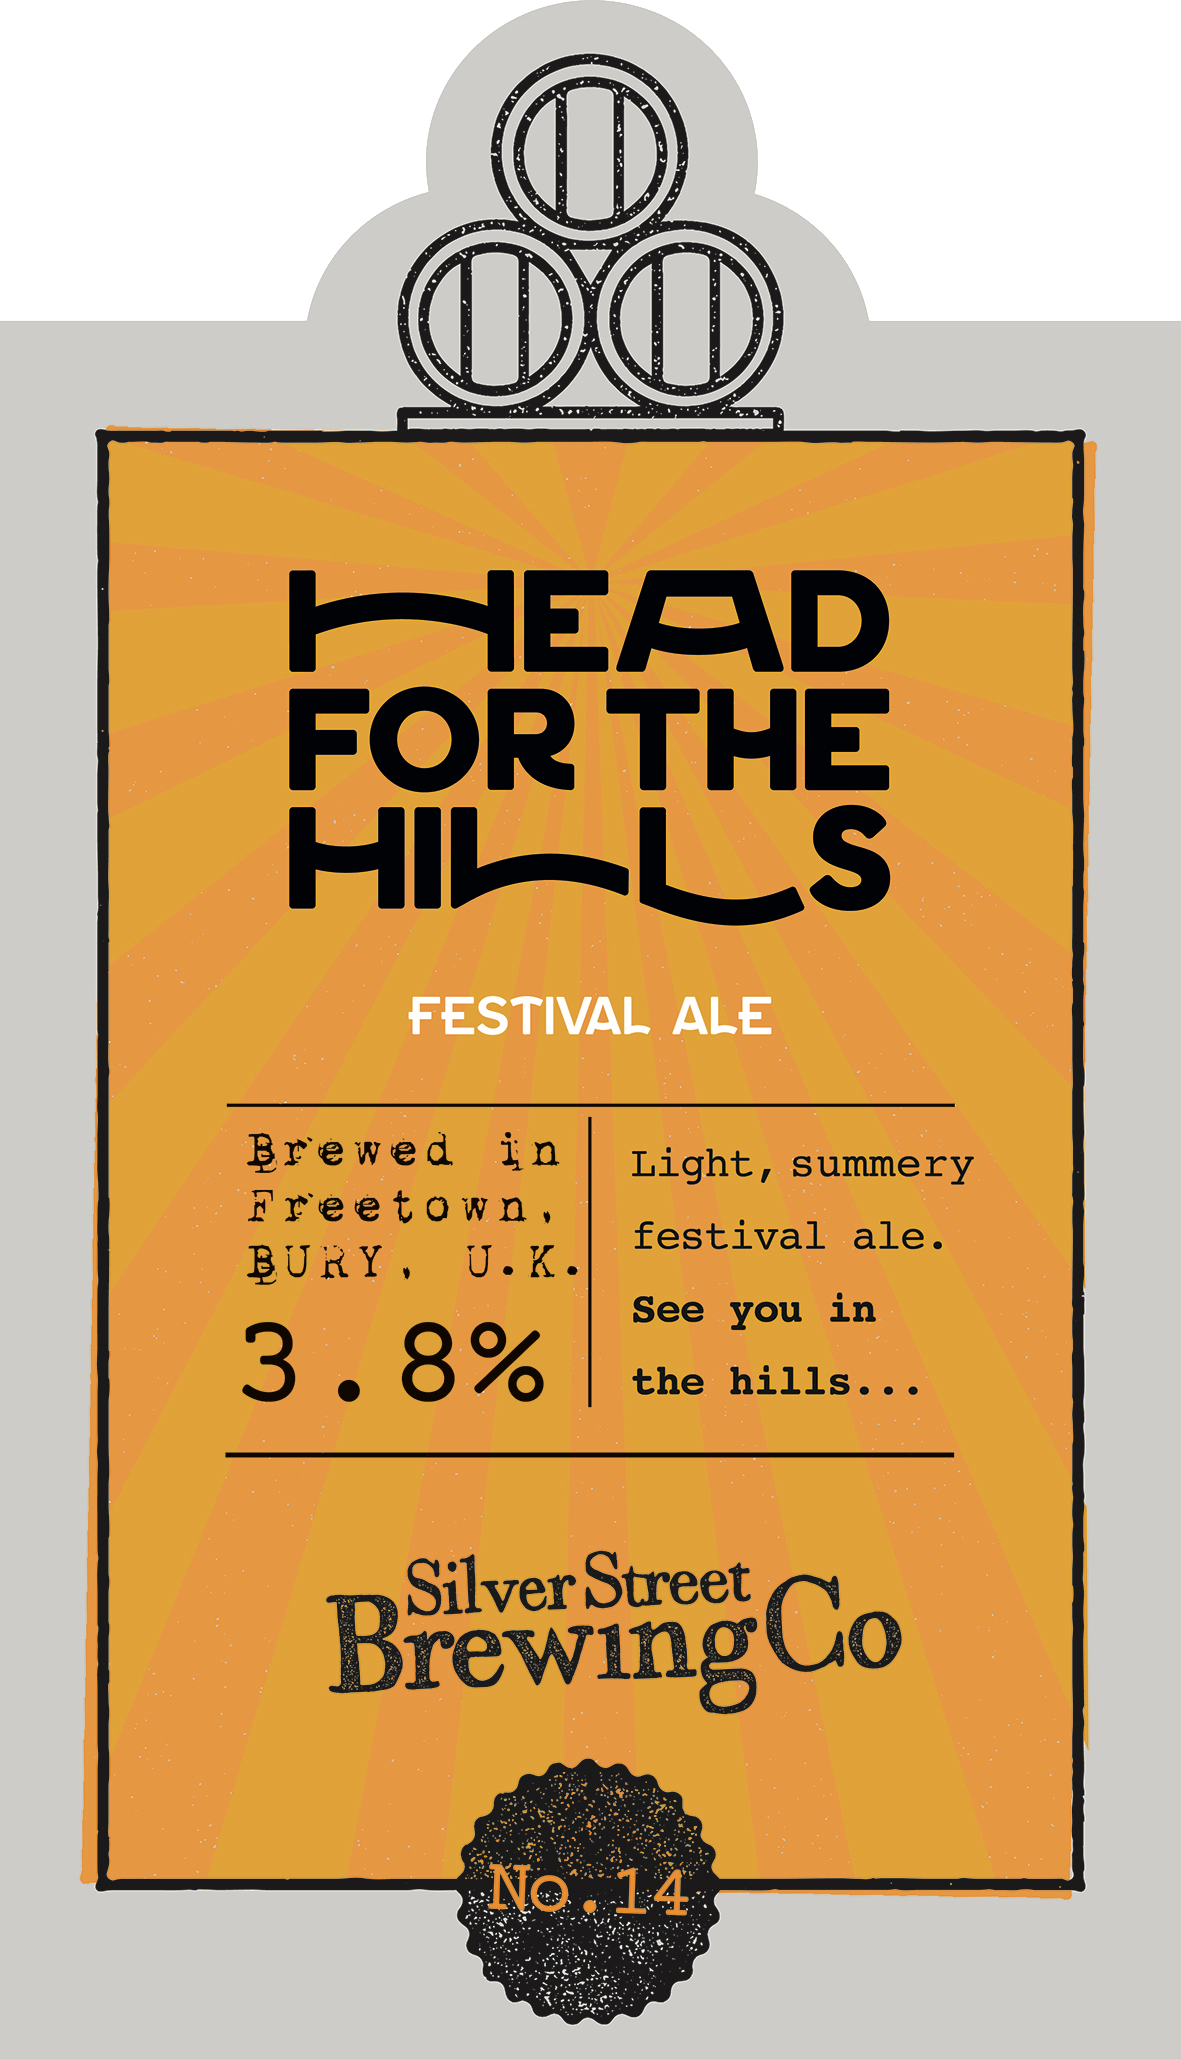 HEAD FOR THE HILLS 3.8%